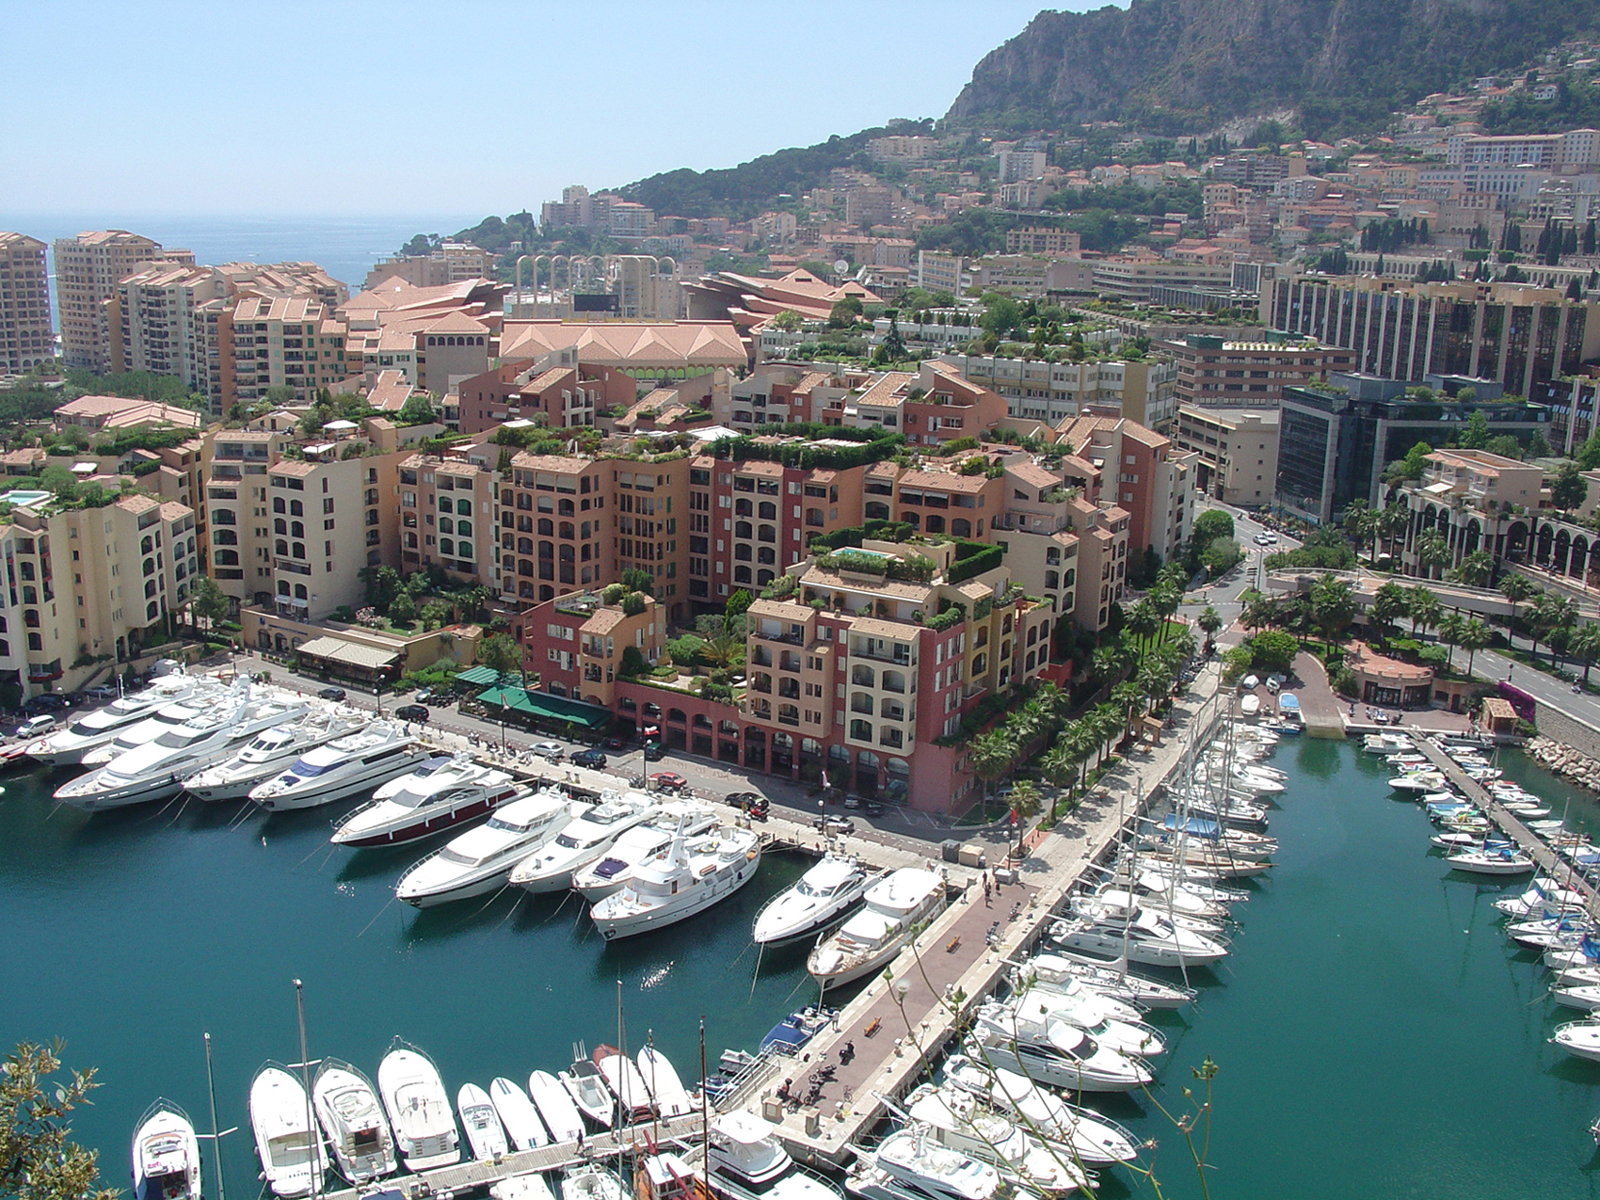 View of Fontvieille